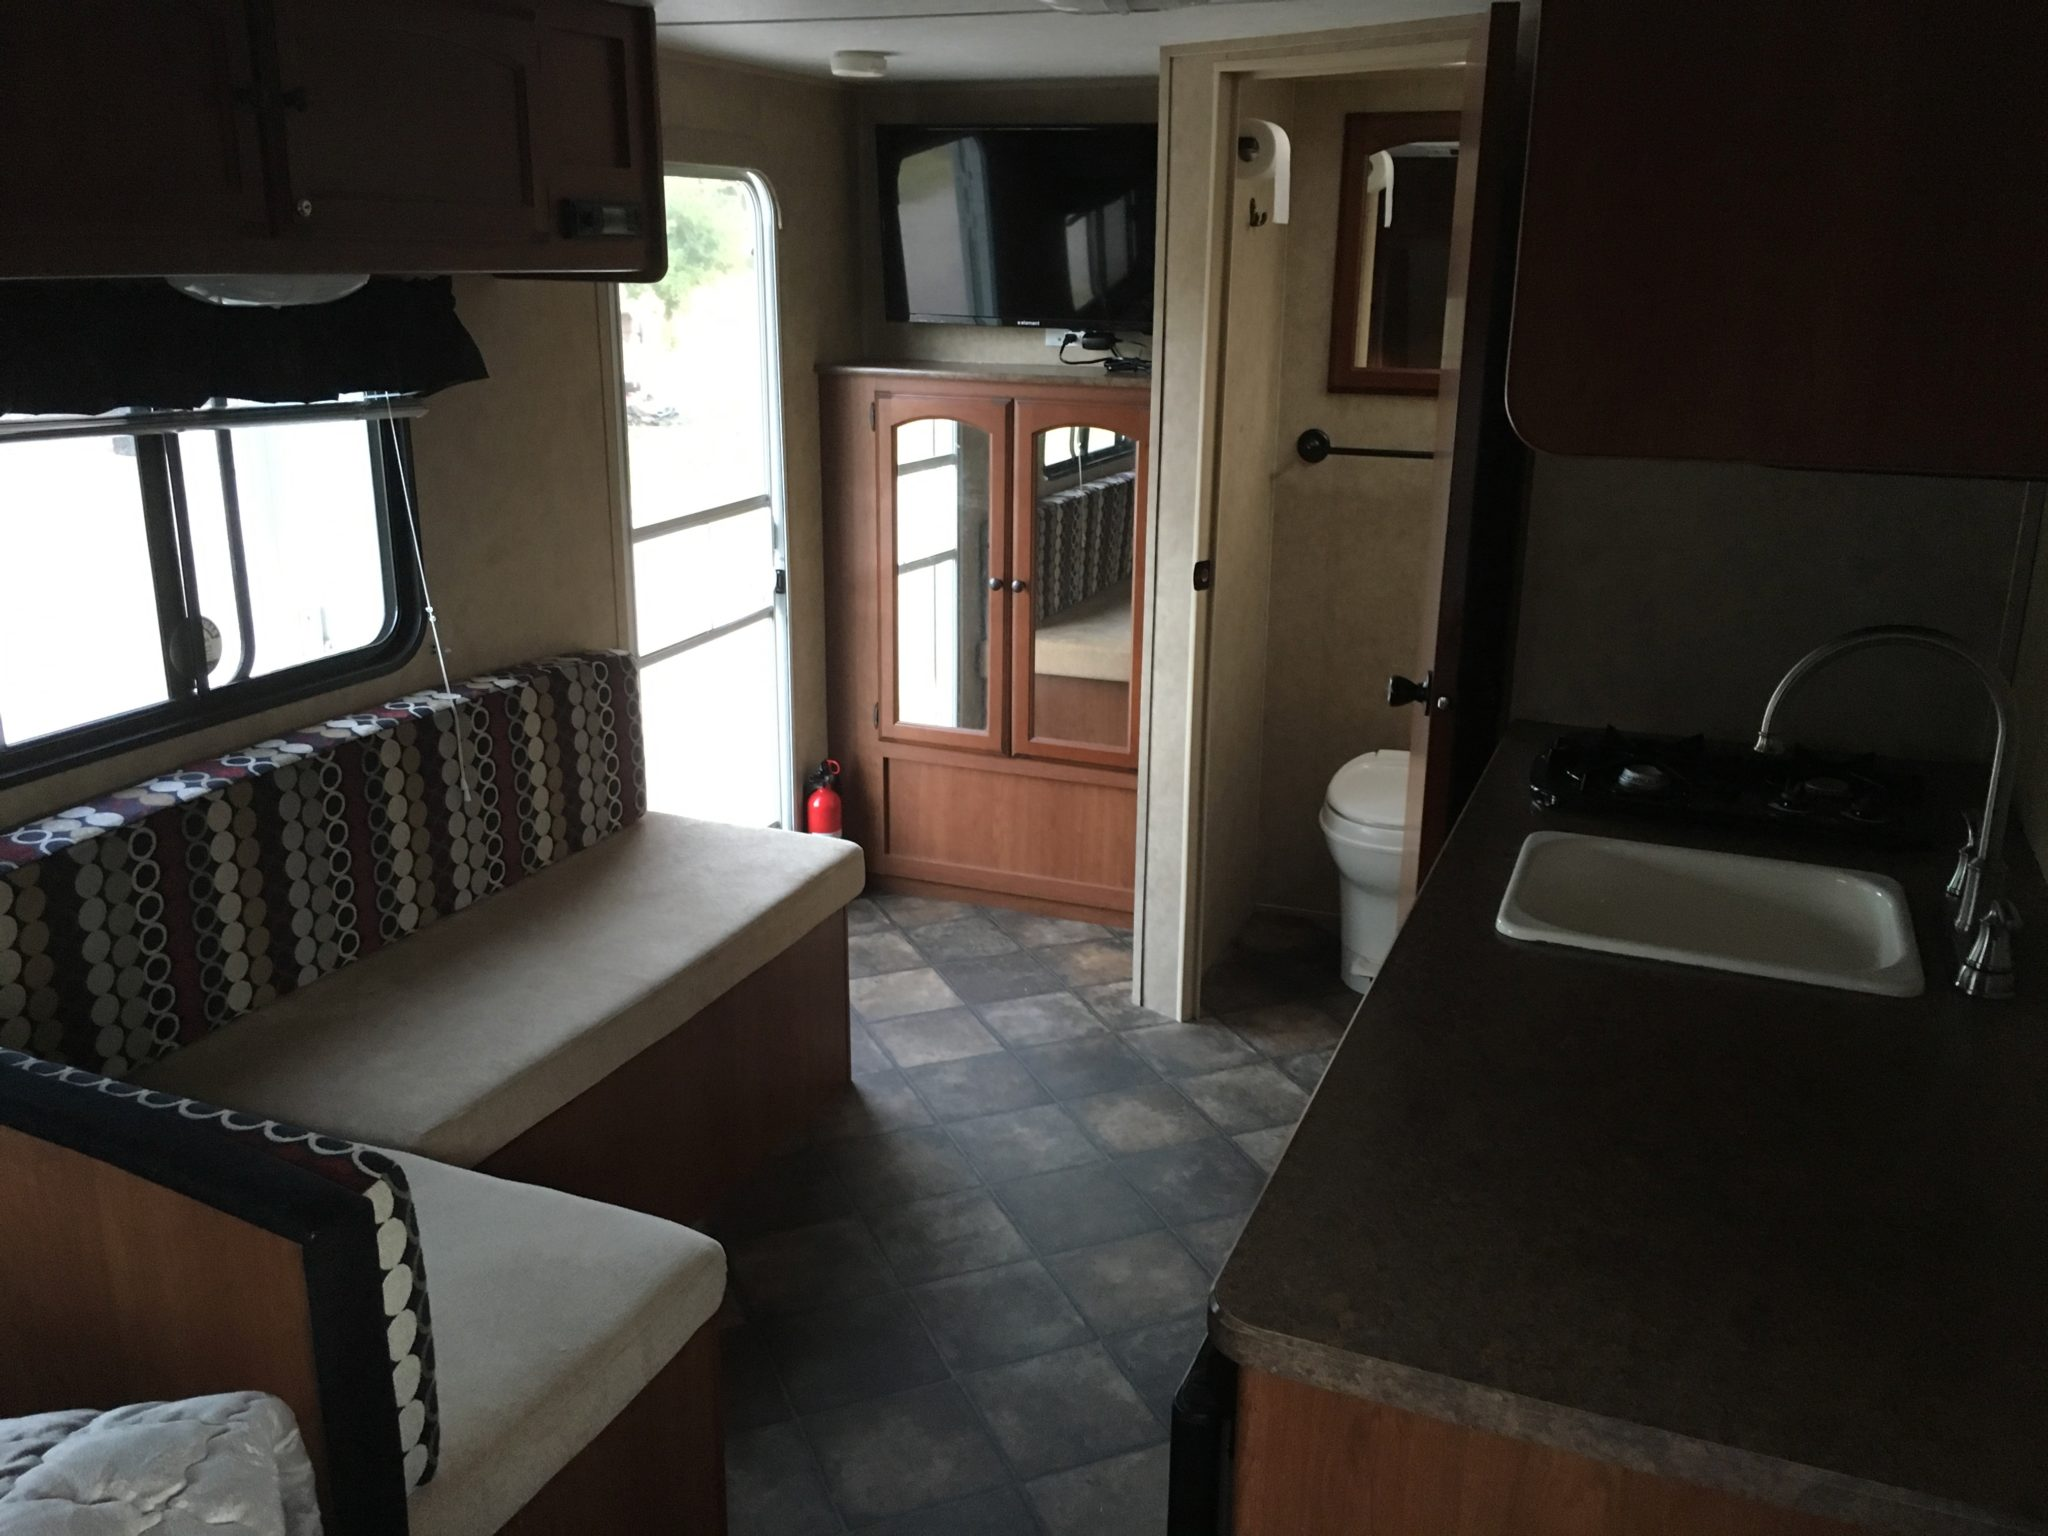 Dutchmen 816QB 2013 Travel Trailer interior from front